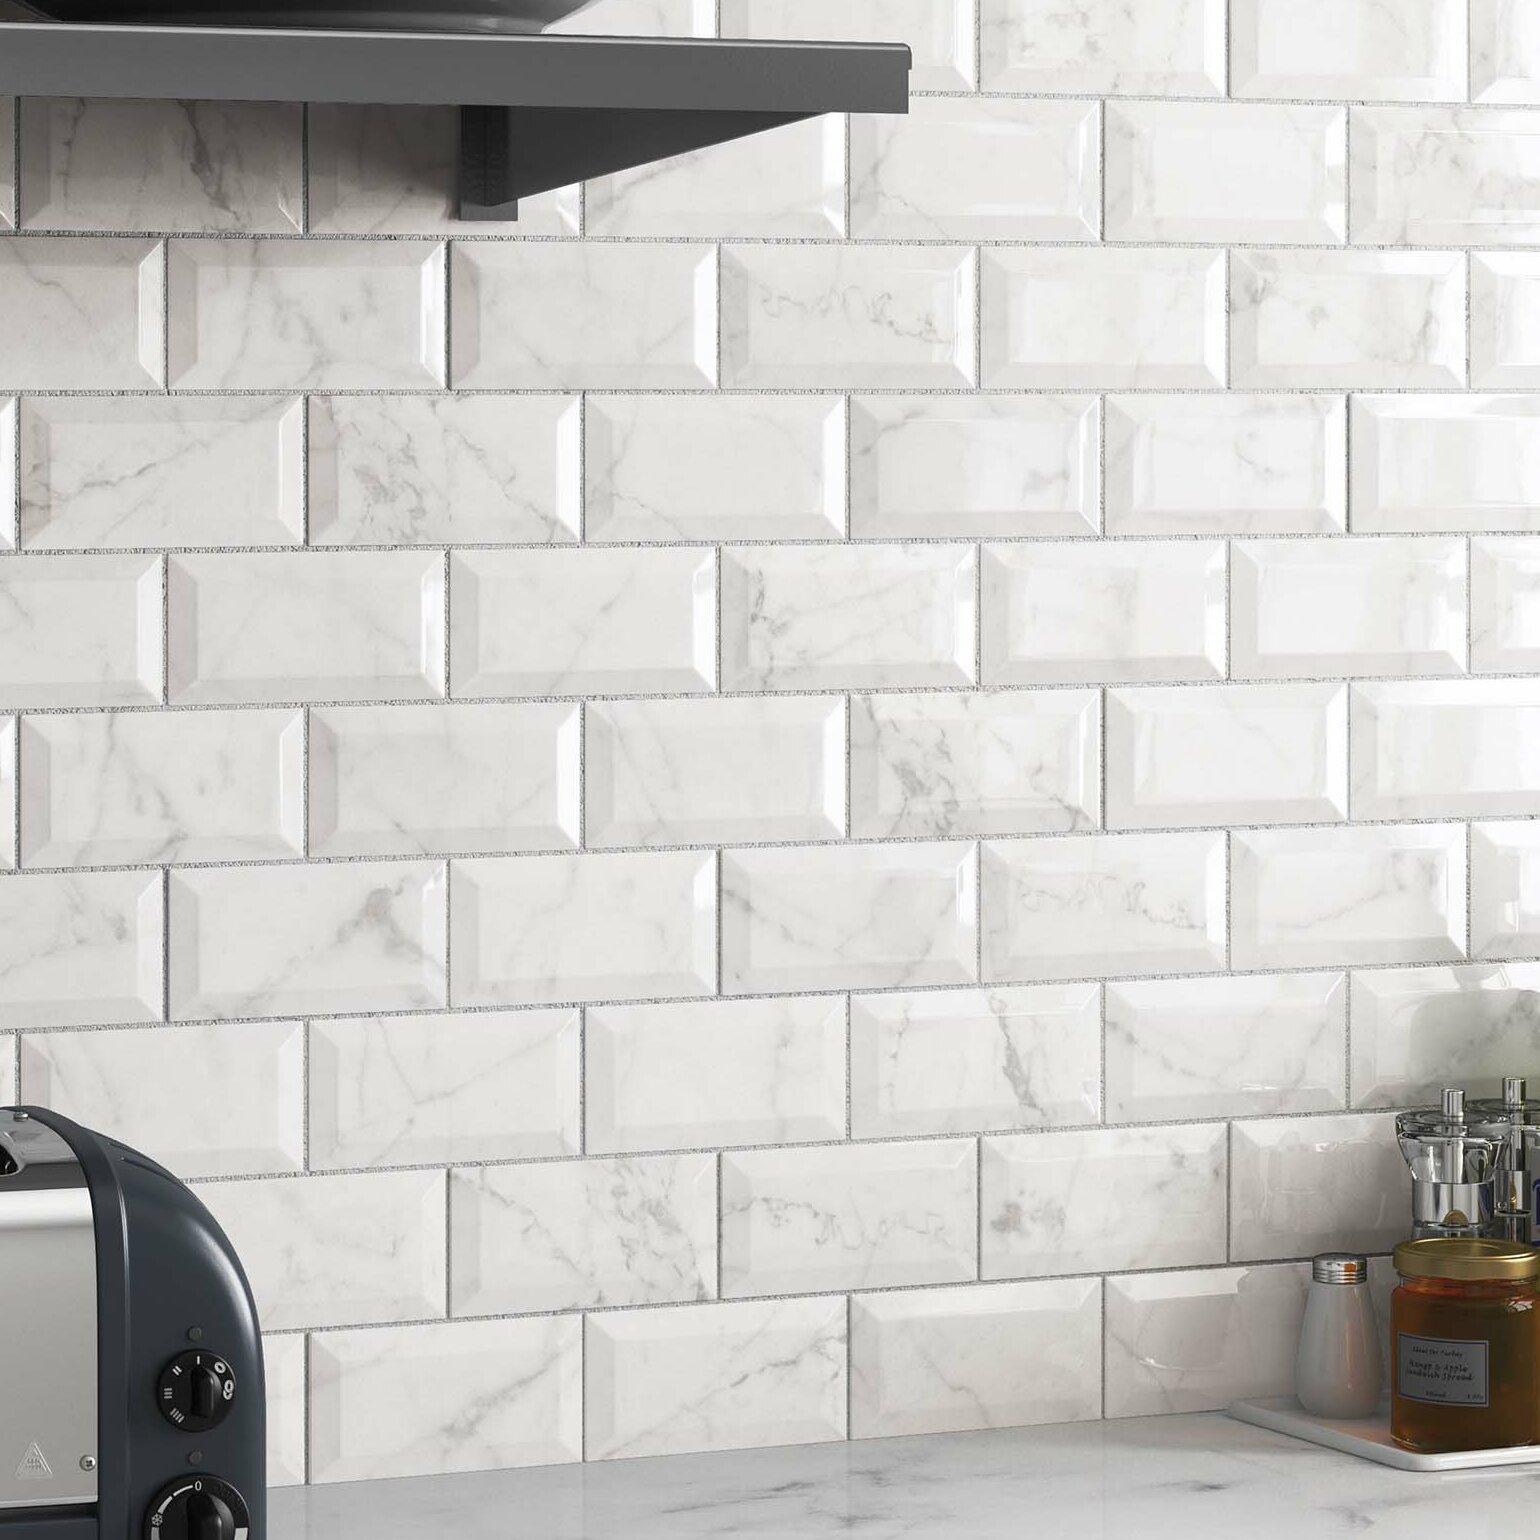 Subway Tile In White Marble